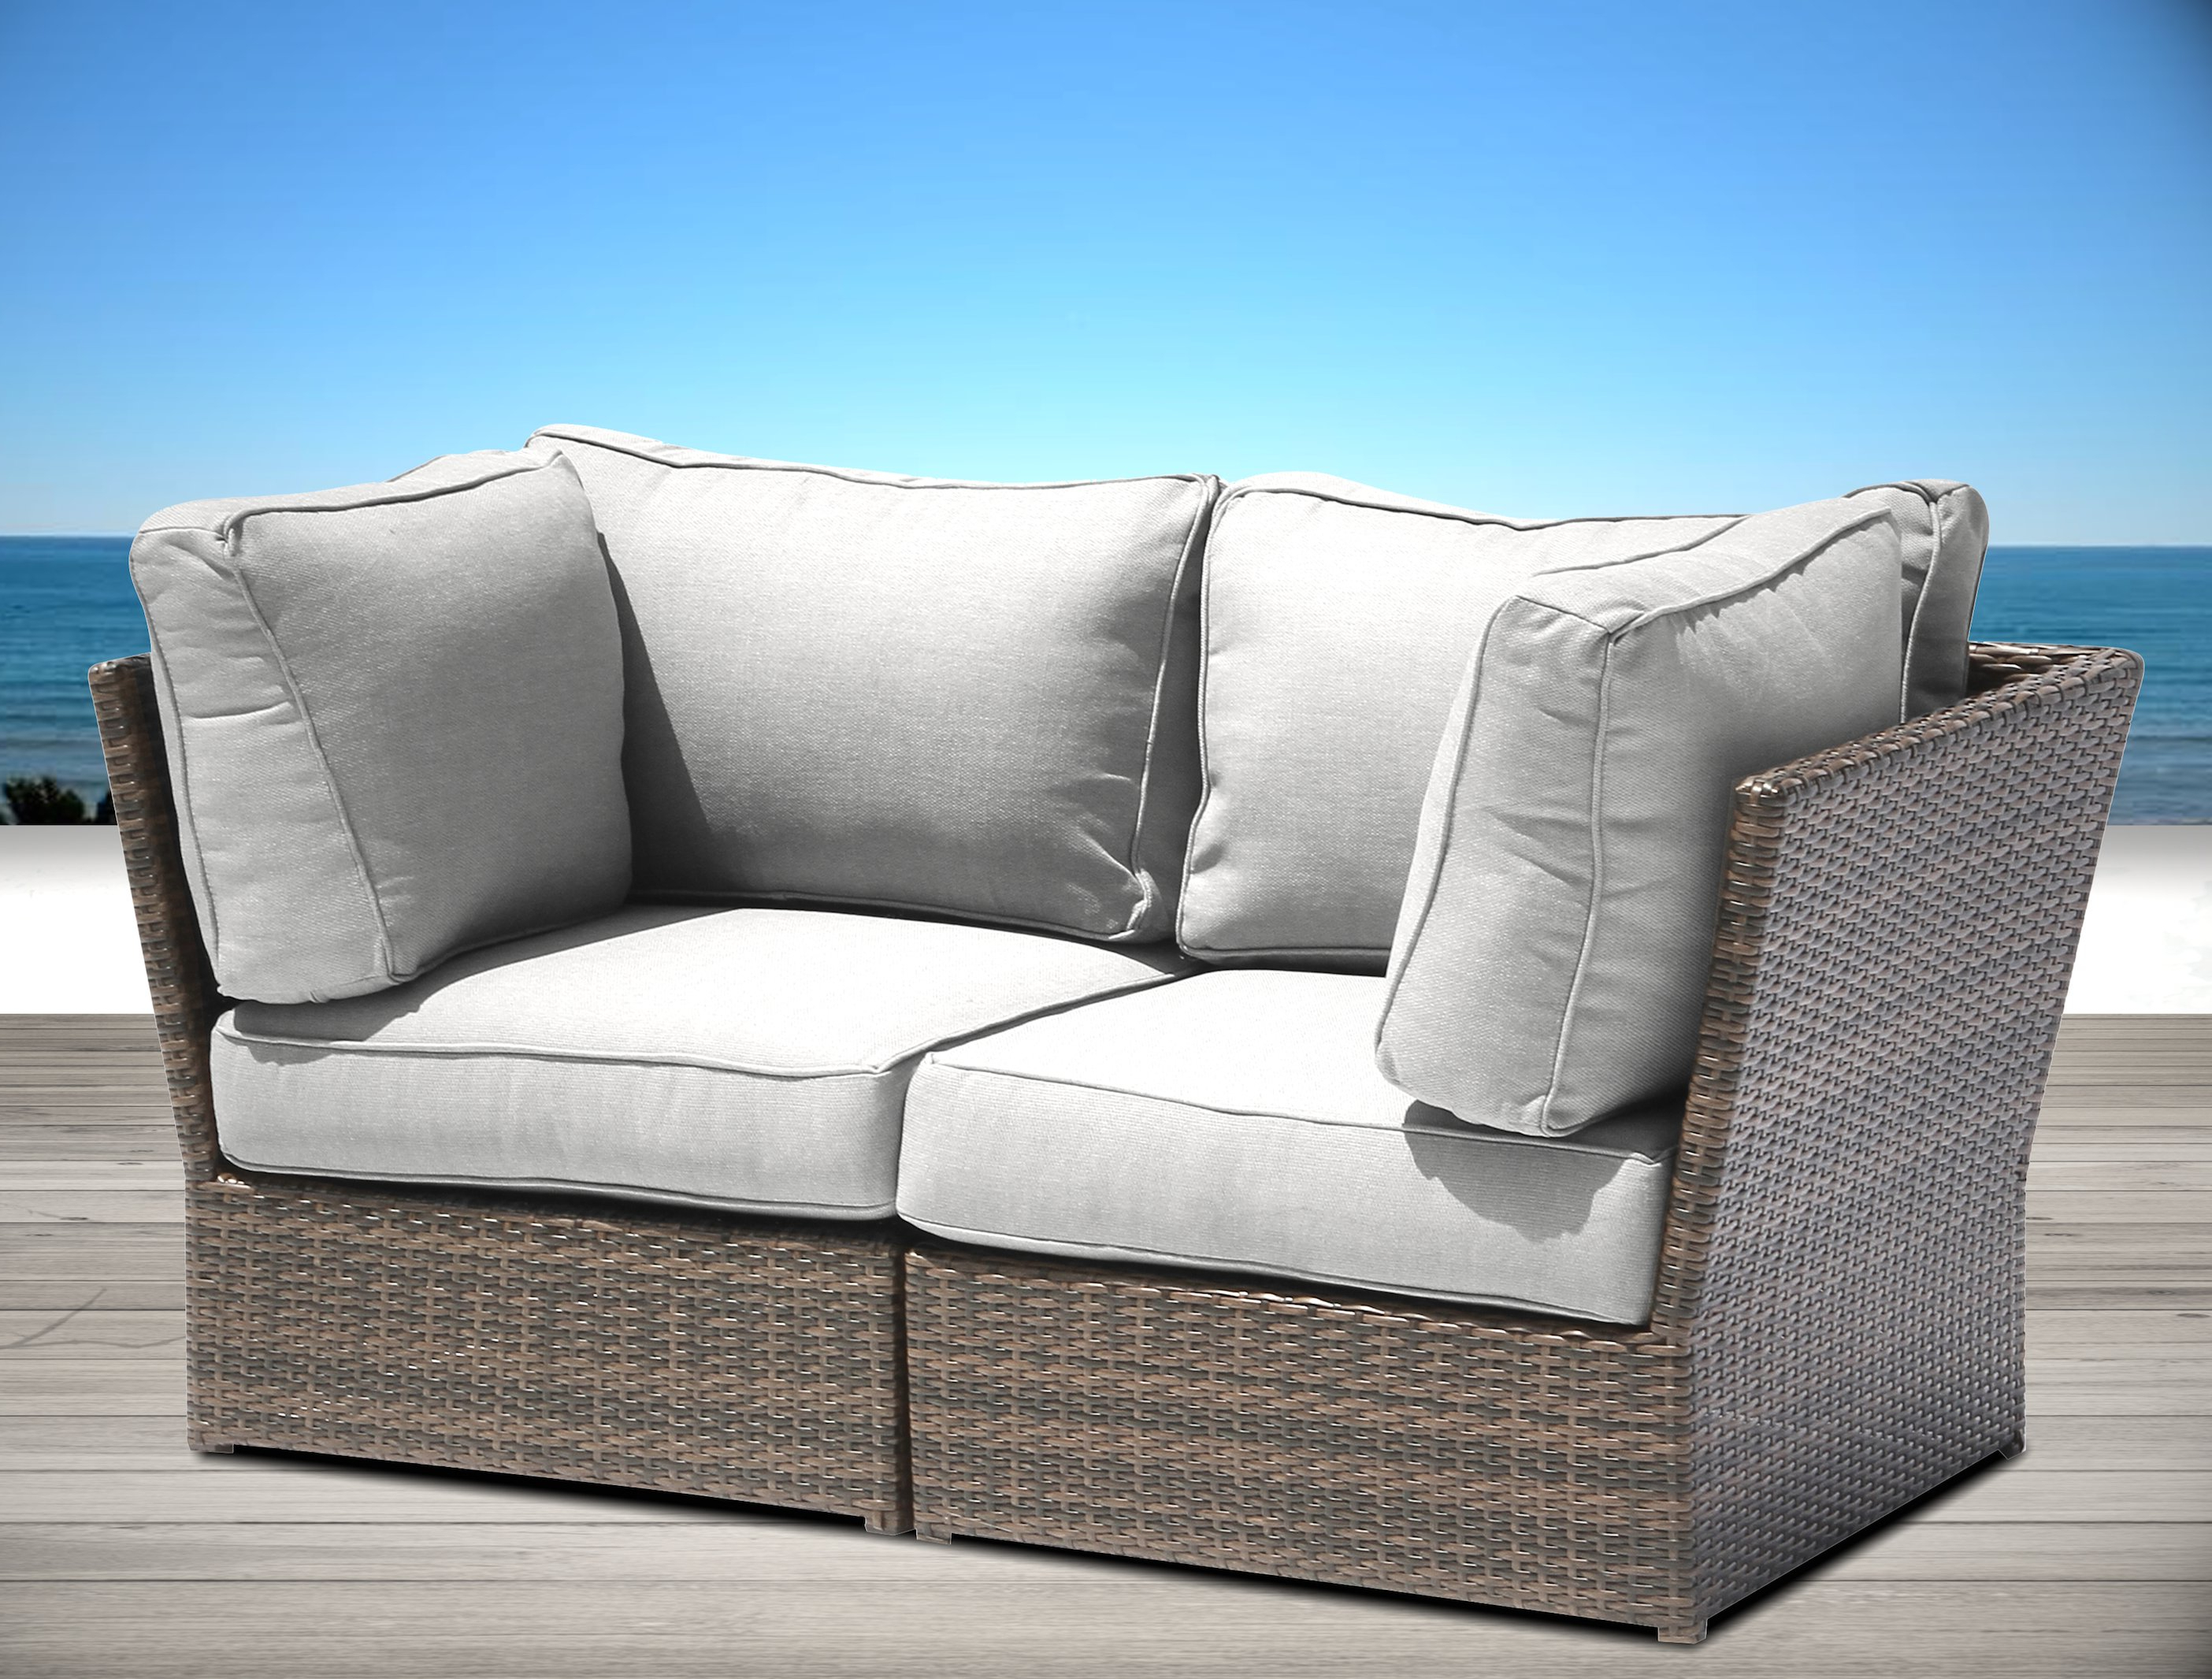 Brayden Studio Simmerman Loveseat With Cushions Regarding Widely Used Castelli Loveseats With Cushions (View 1 of 20)